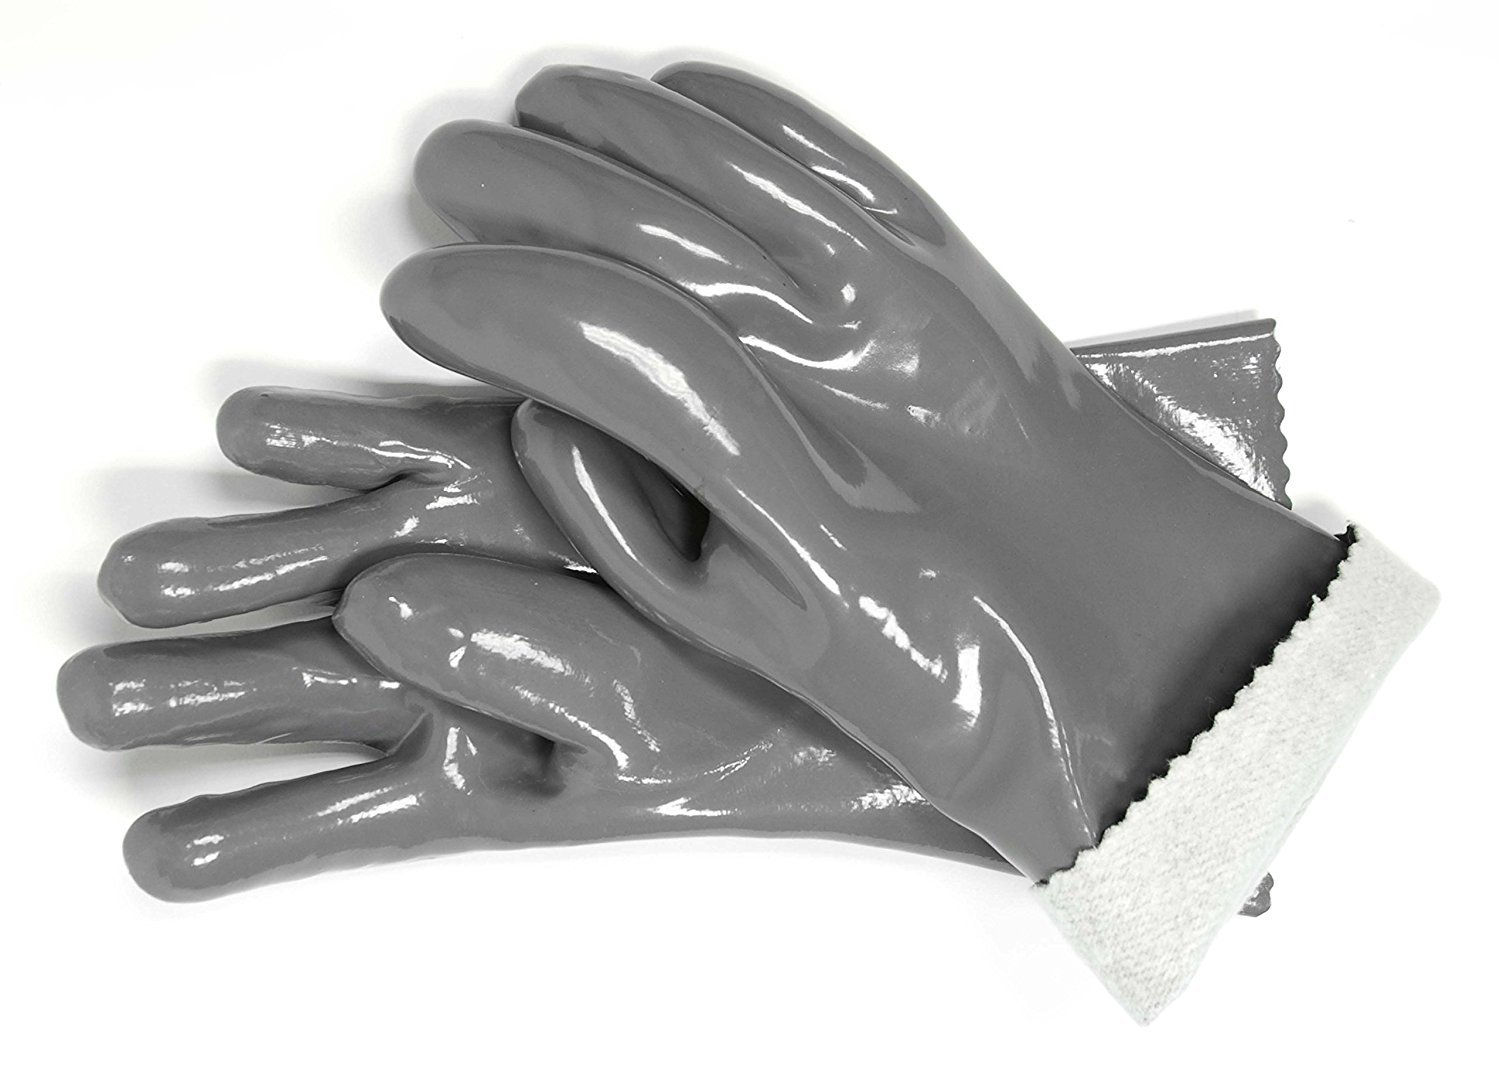 Charcoal Companion Insulated Food Gloves Pair, 12.4-Inch - CC5152 - Durable and Reusable - Safely Handle Hot Food from Grill or Kitchen